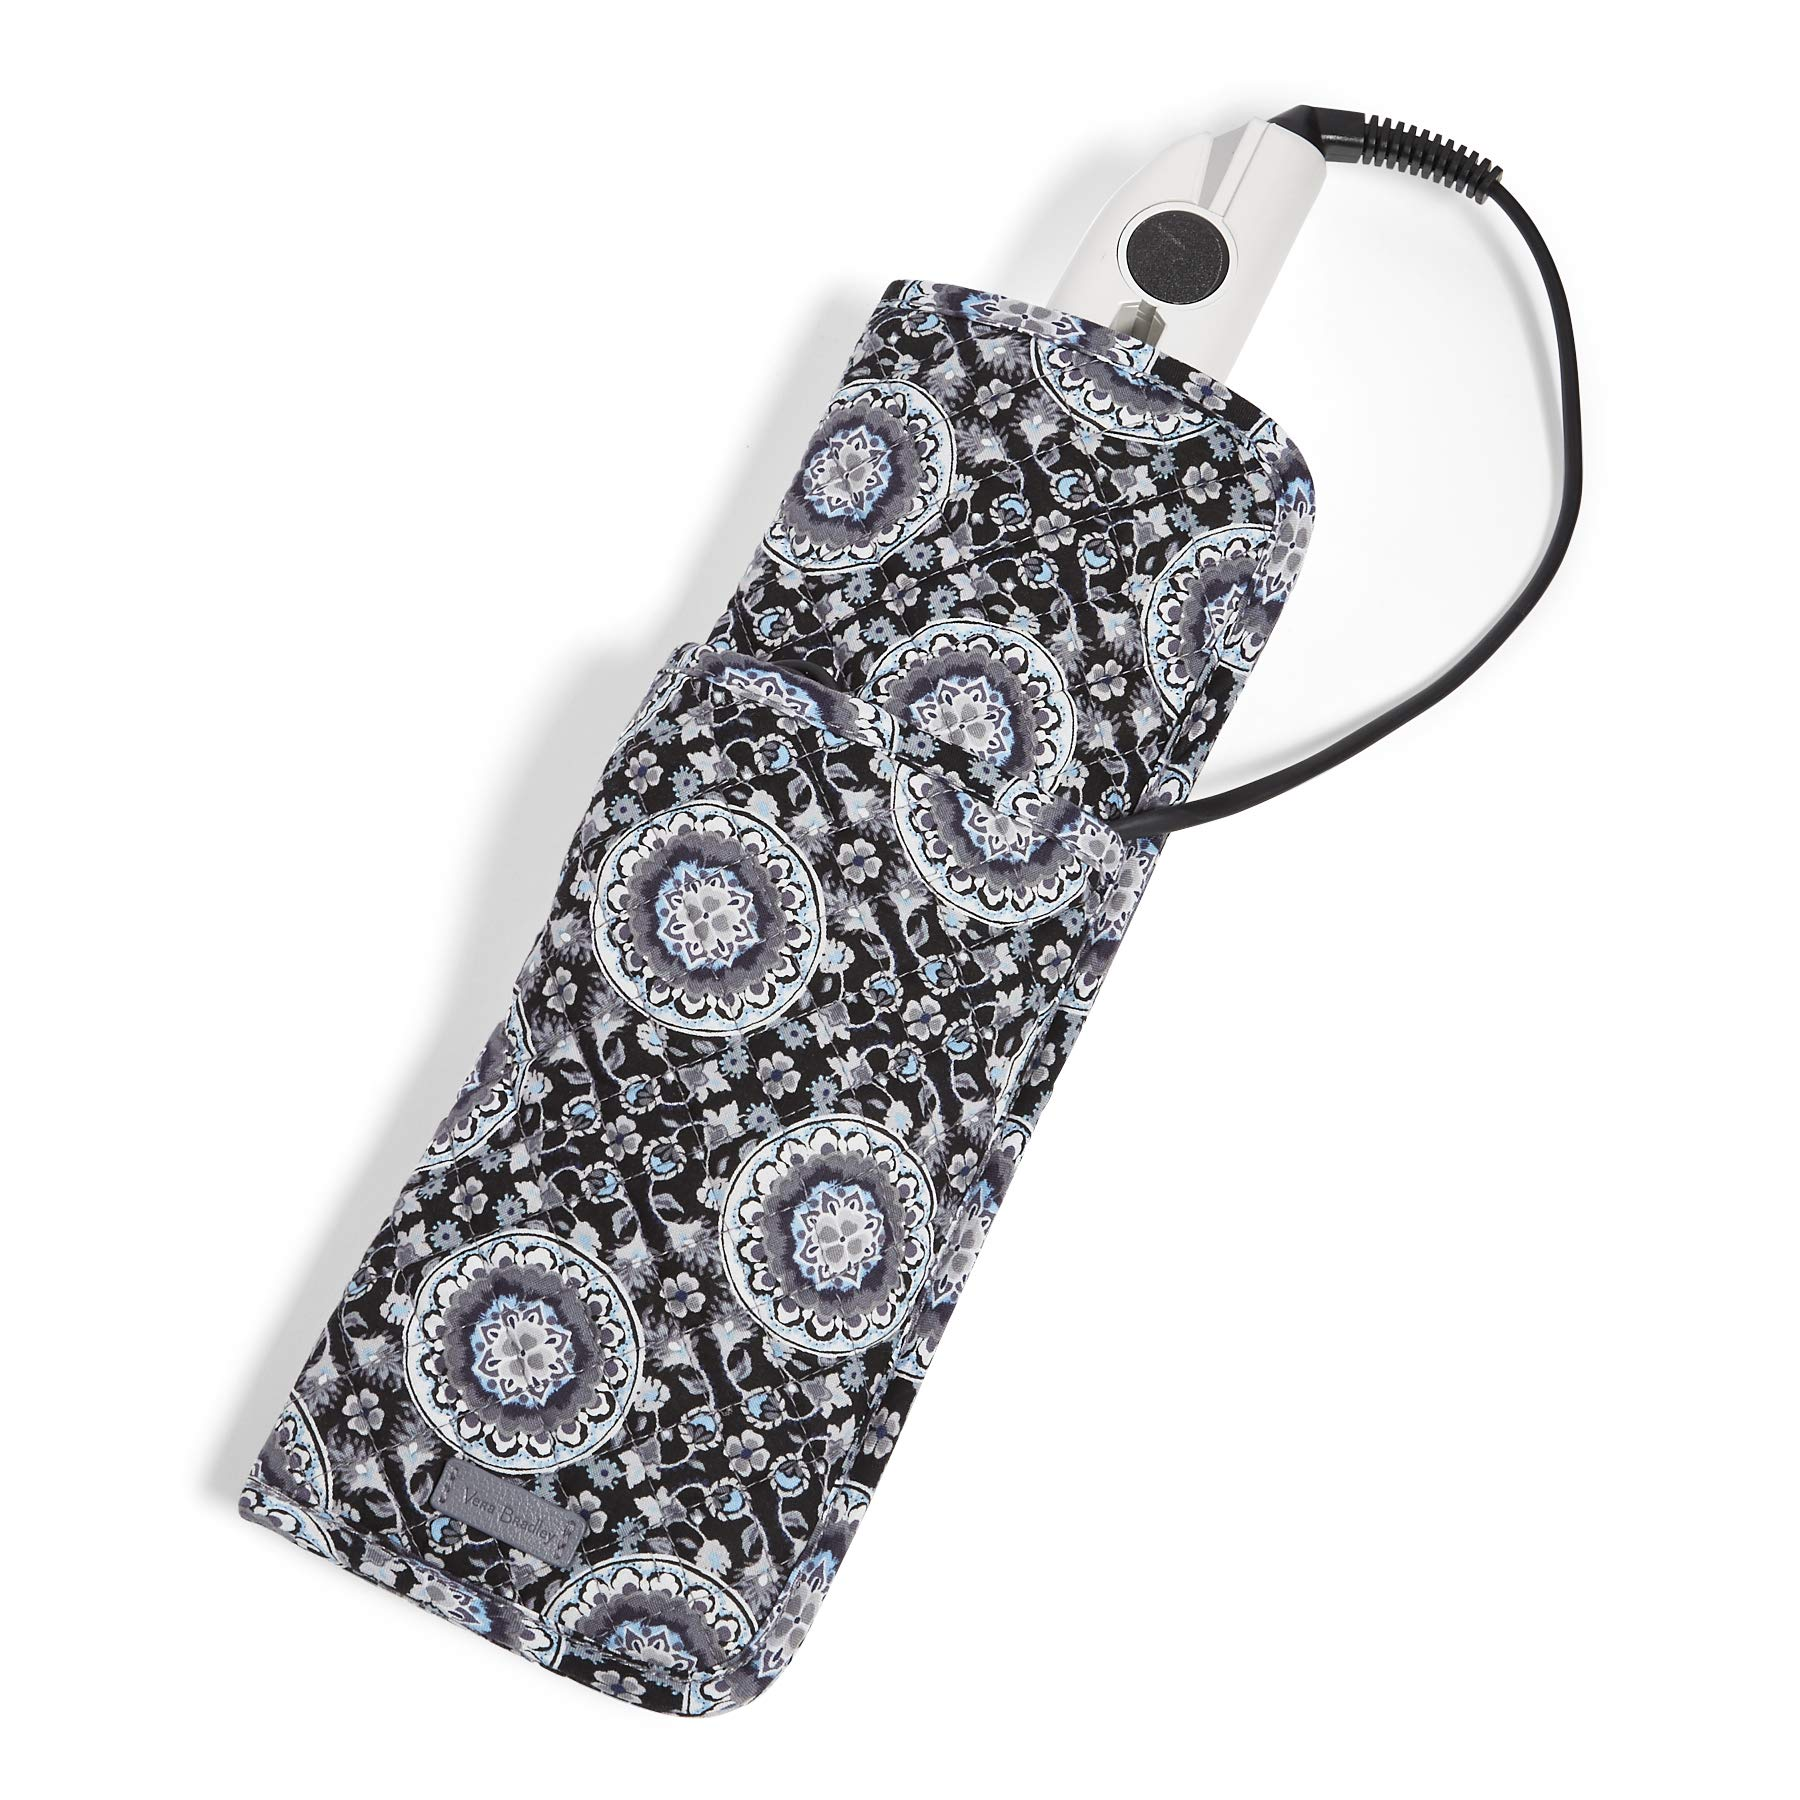 Vera Bradley Iconic Curling and Flat Iron Cover, Signature Cotton, Charcoal Medallion by Vera Bradley